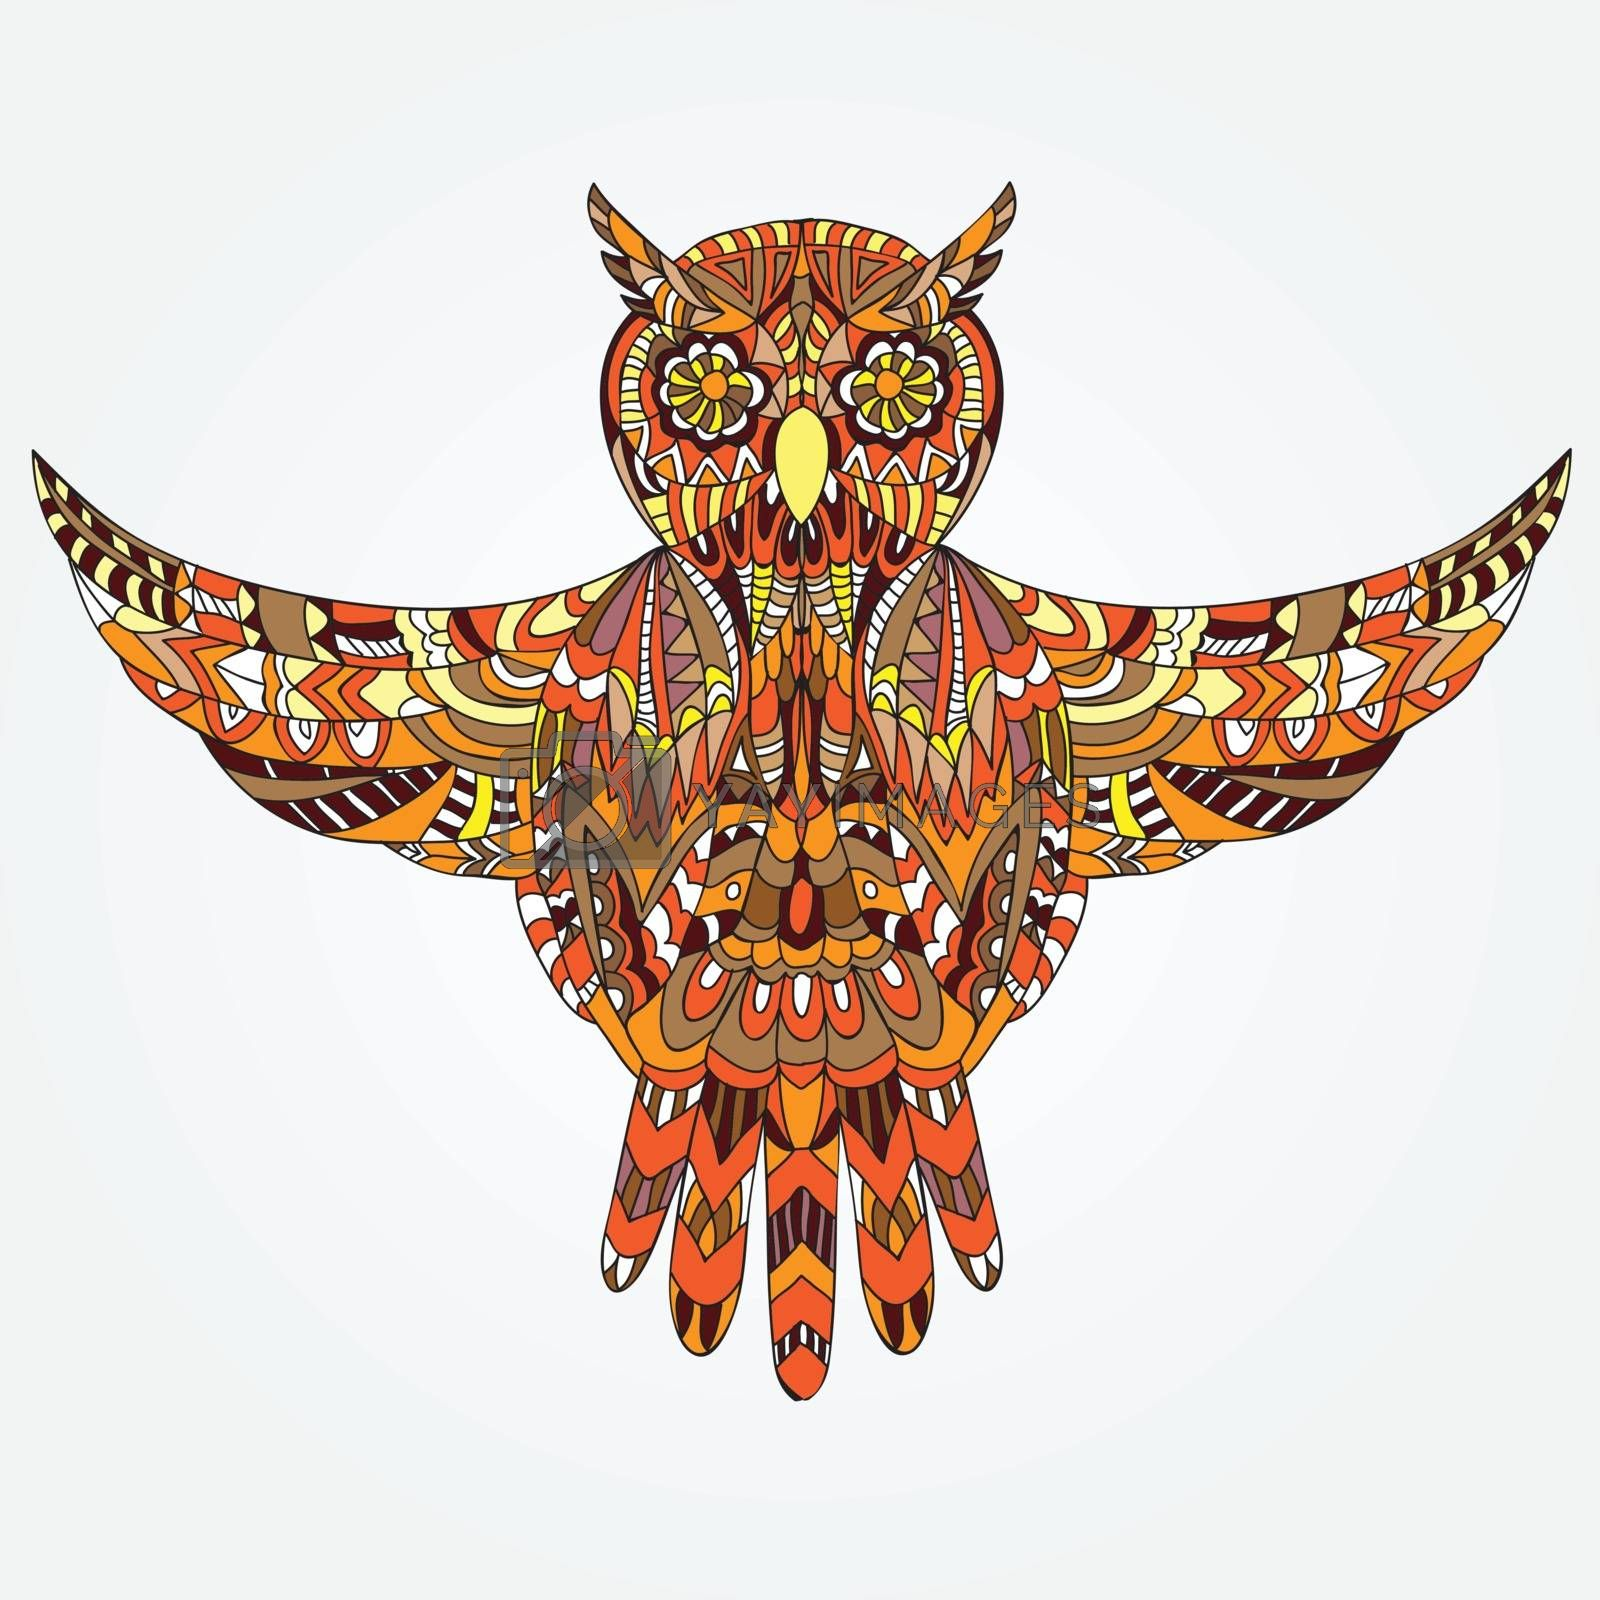 Ornamental hand drawn owl - Vector illustration - doodle style